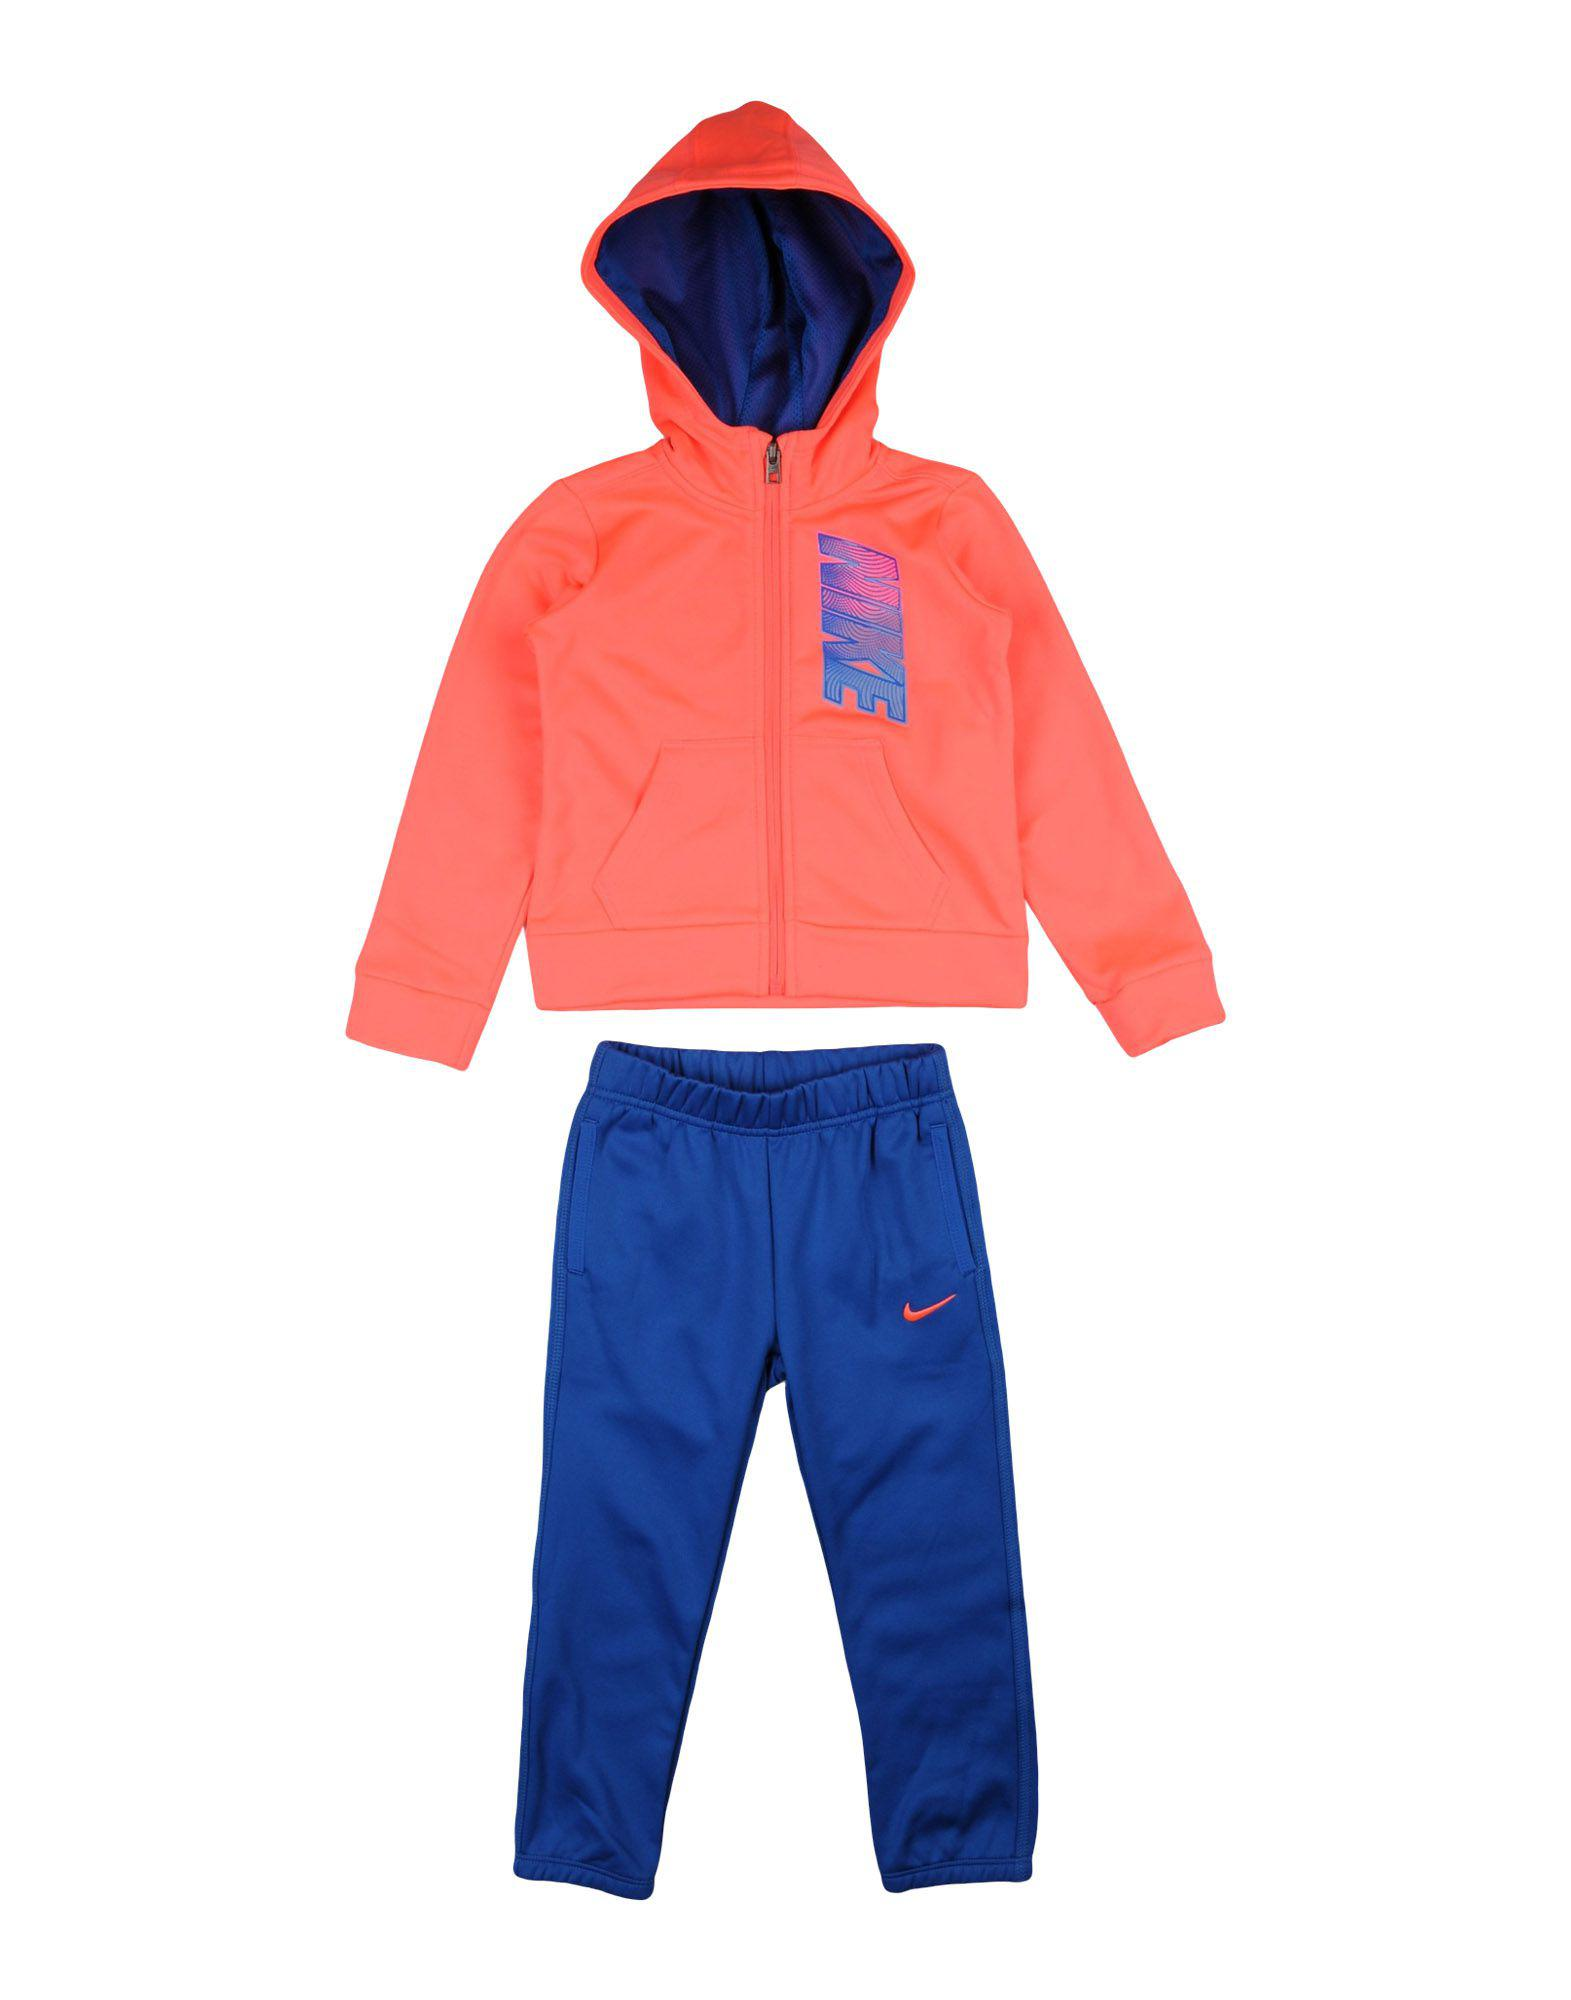 ... Lyst - Nike Sweatsuit in Blue for Men so cheap b57eb 25518 ... 37d5a8be7